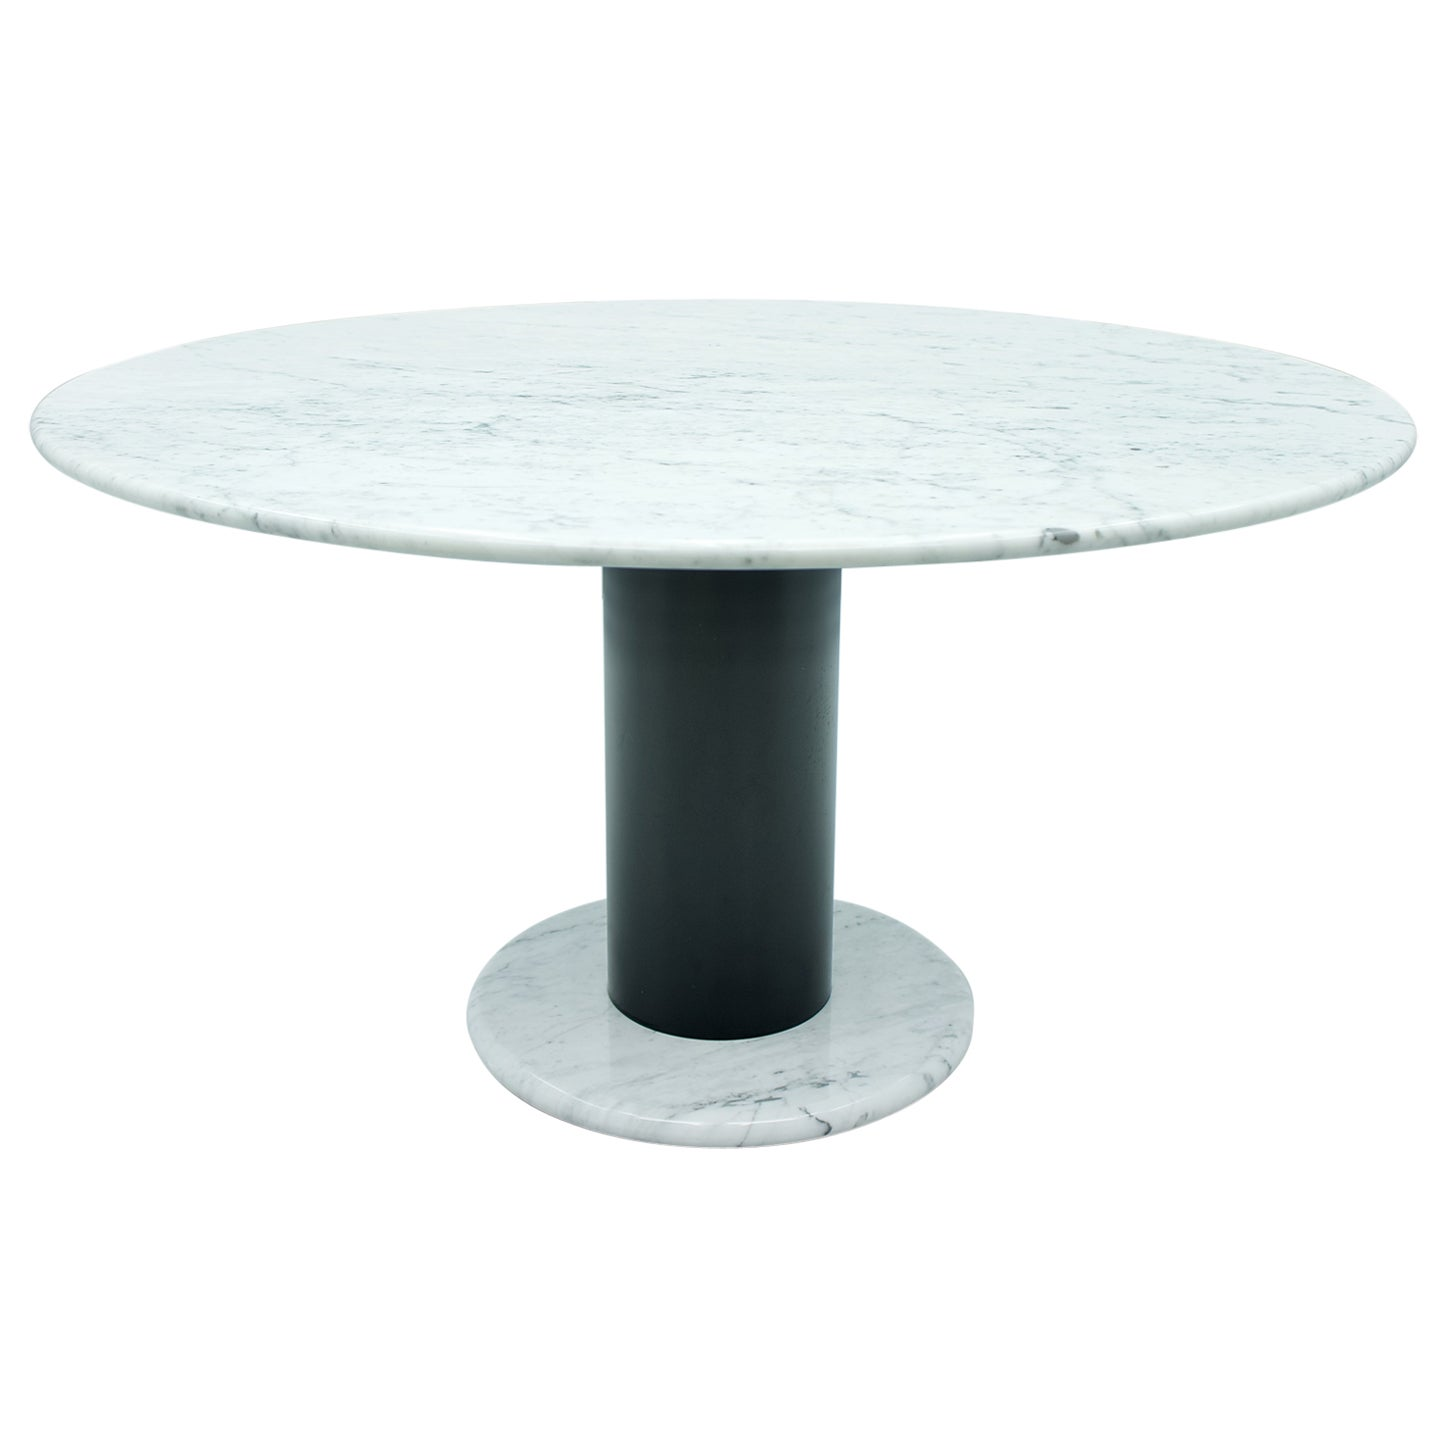 Ettore Sottsass White Marble Pedestal Dining Table, 1965